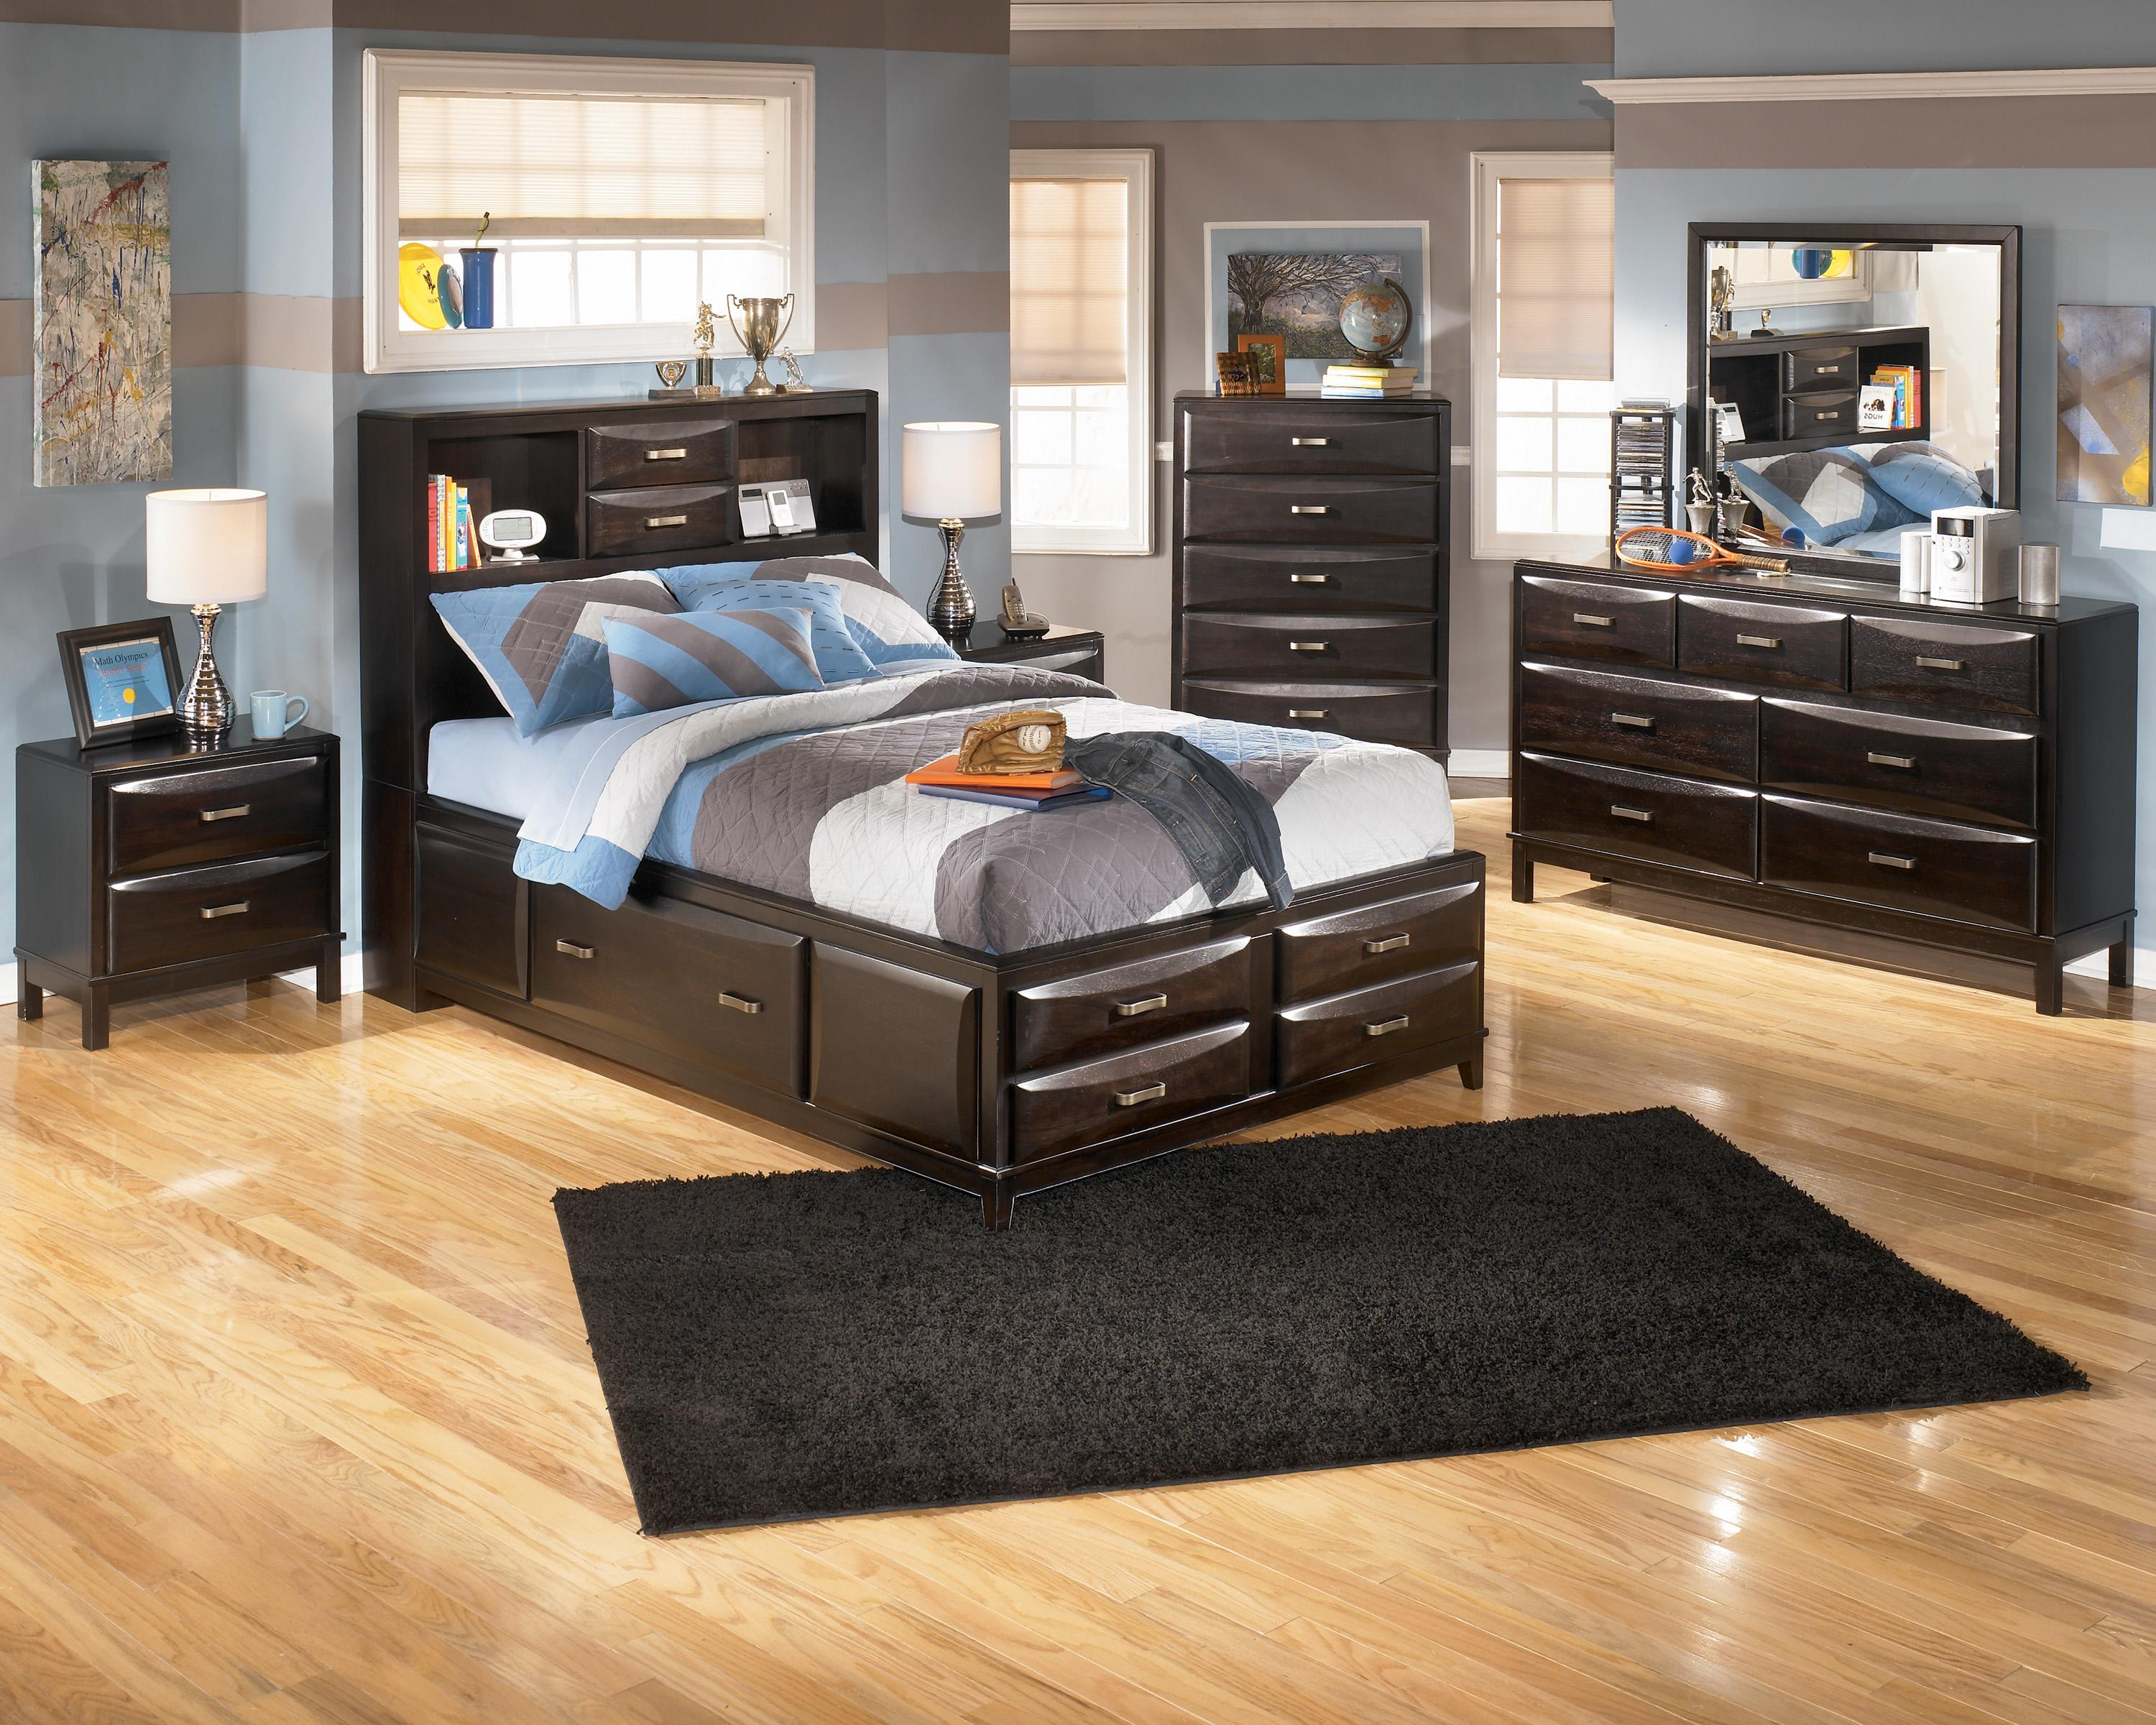 Ashley furniture kira full storage bed becker furniture - Ashley furniture full bedroom sets ...